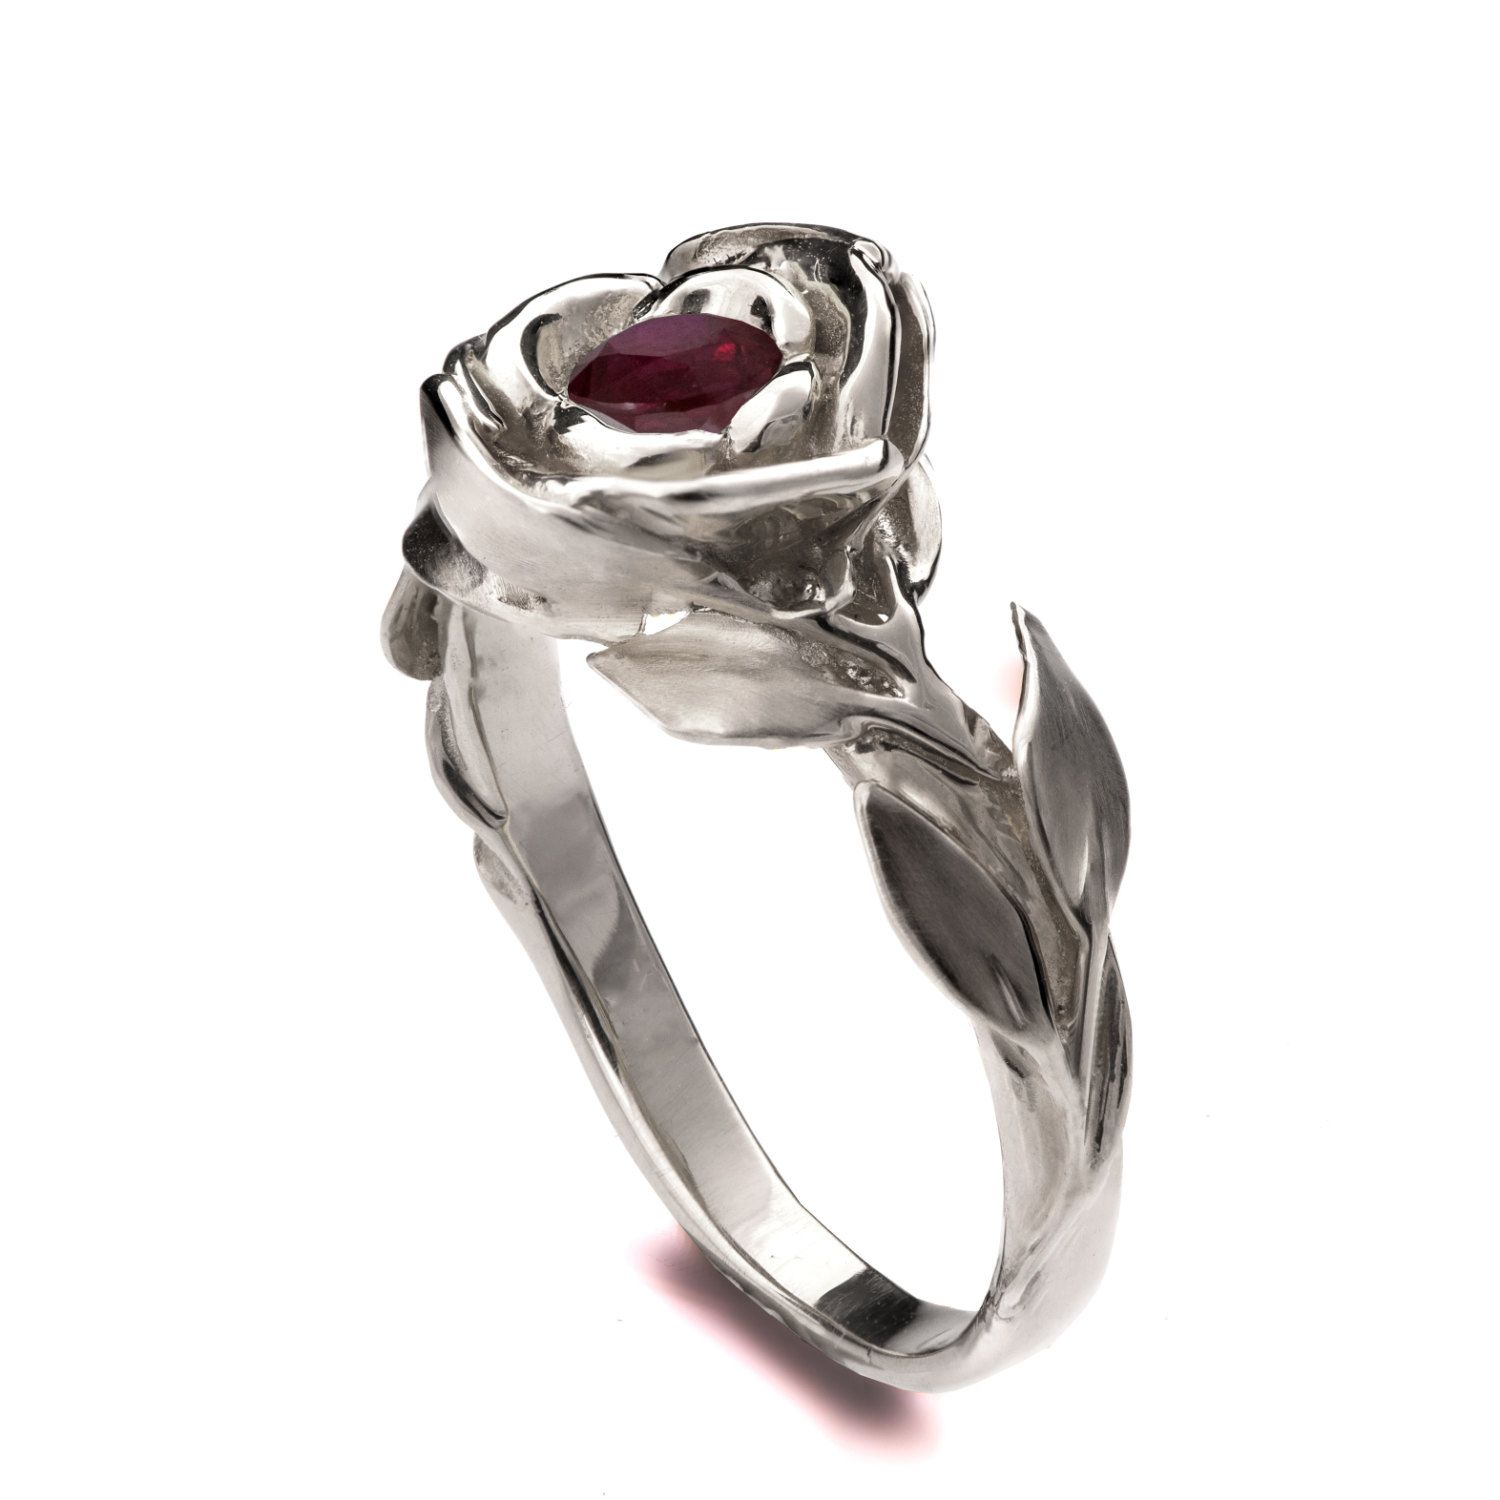 Rose Engagement Ring  18K White Gold Ruby engagement ring  unique     Rose Engagement Ring  18K White Gold Ruby engagement ring  unique engagement  ring  leaf ring  game of thrones jewelry  July Birthstone  1